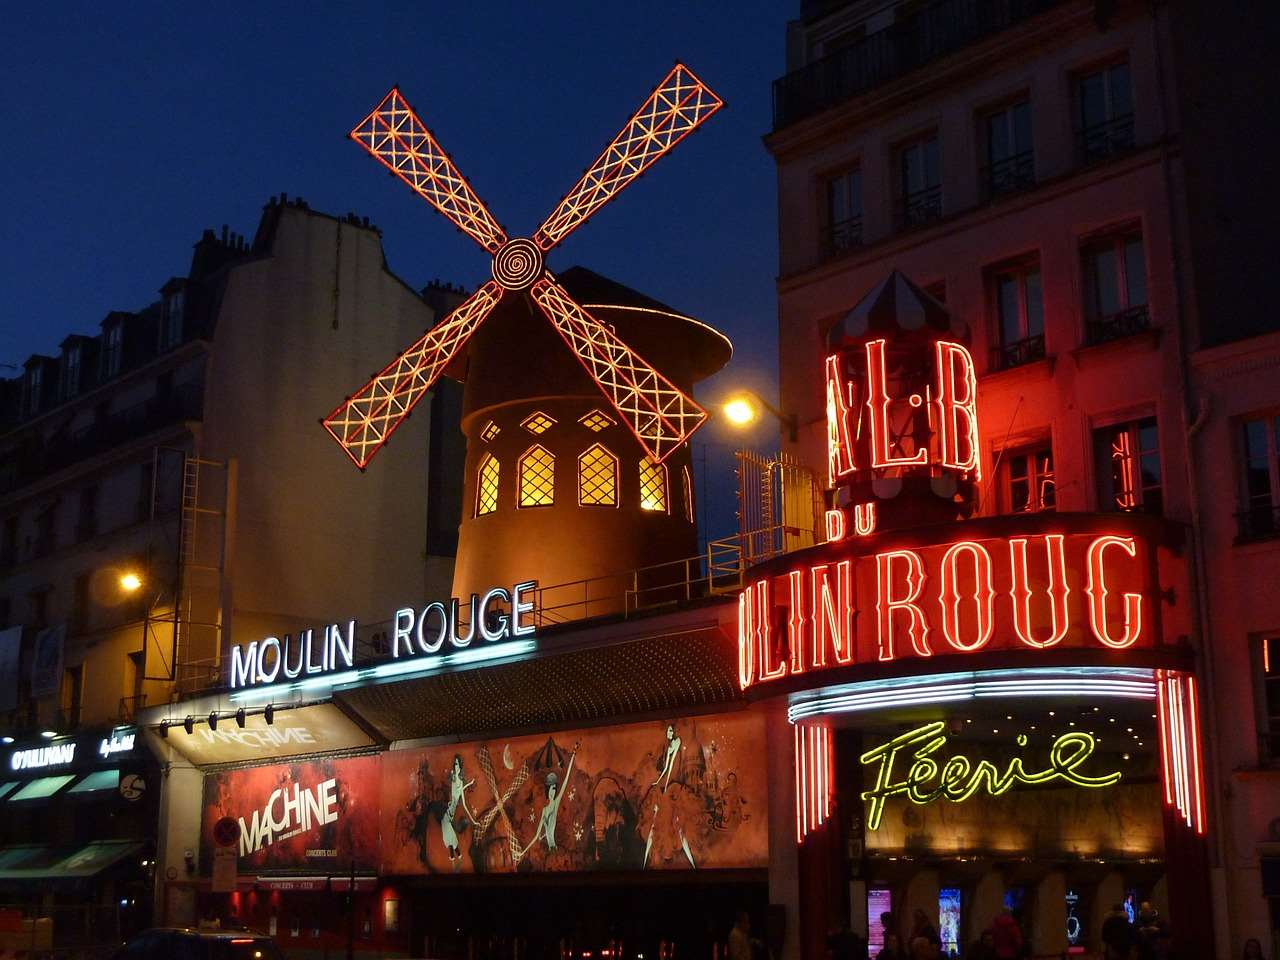 Moulin Rouge - The Musical